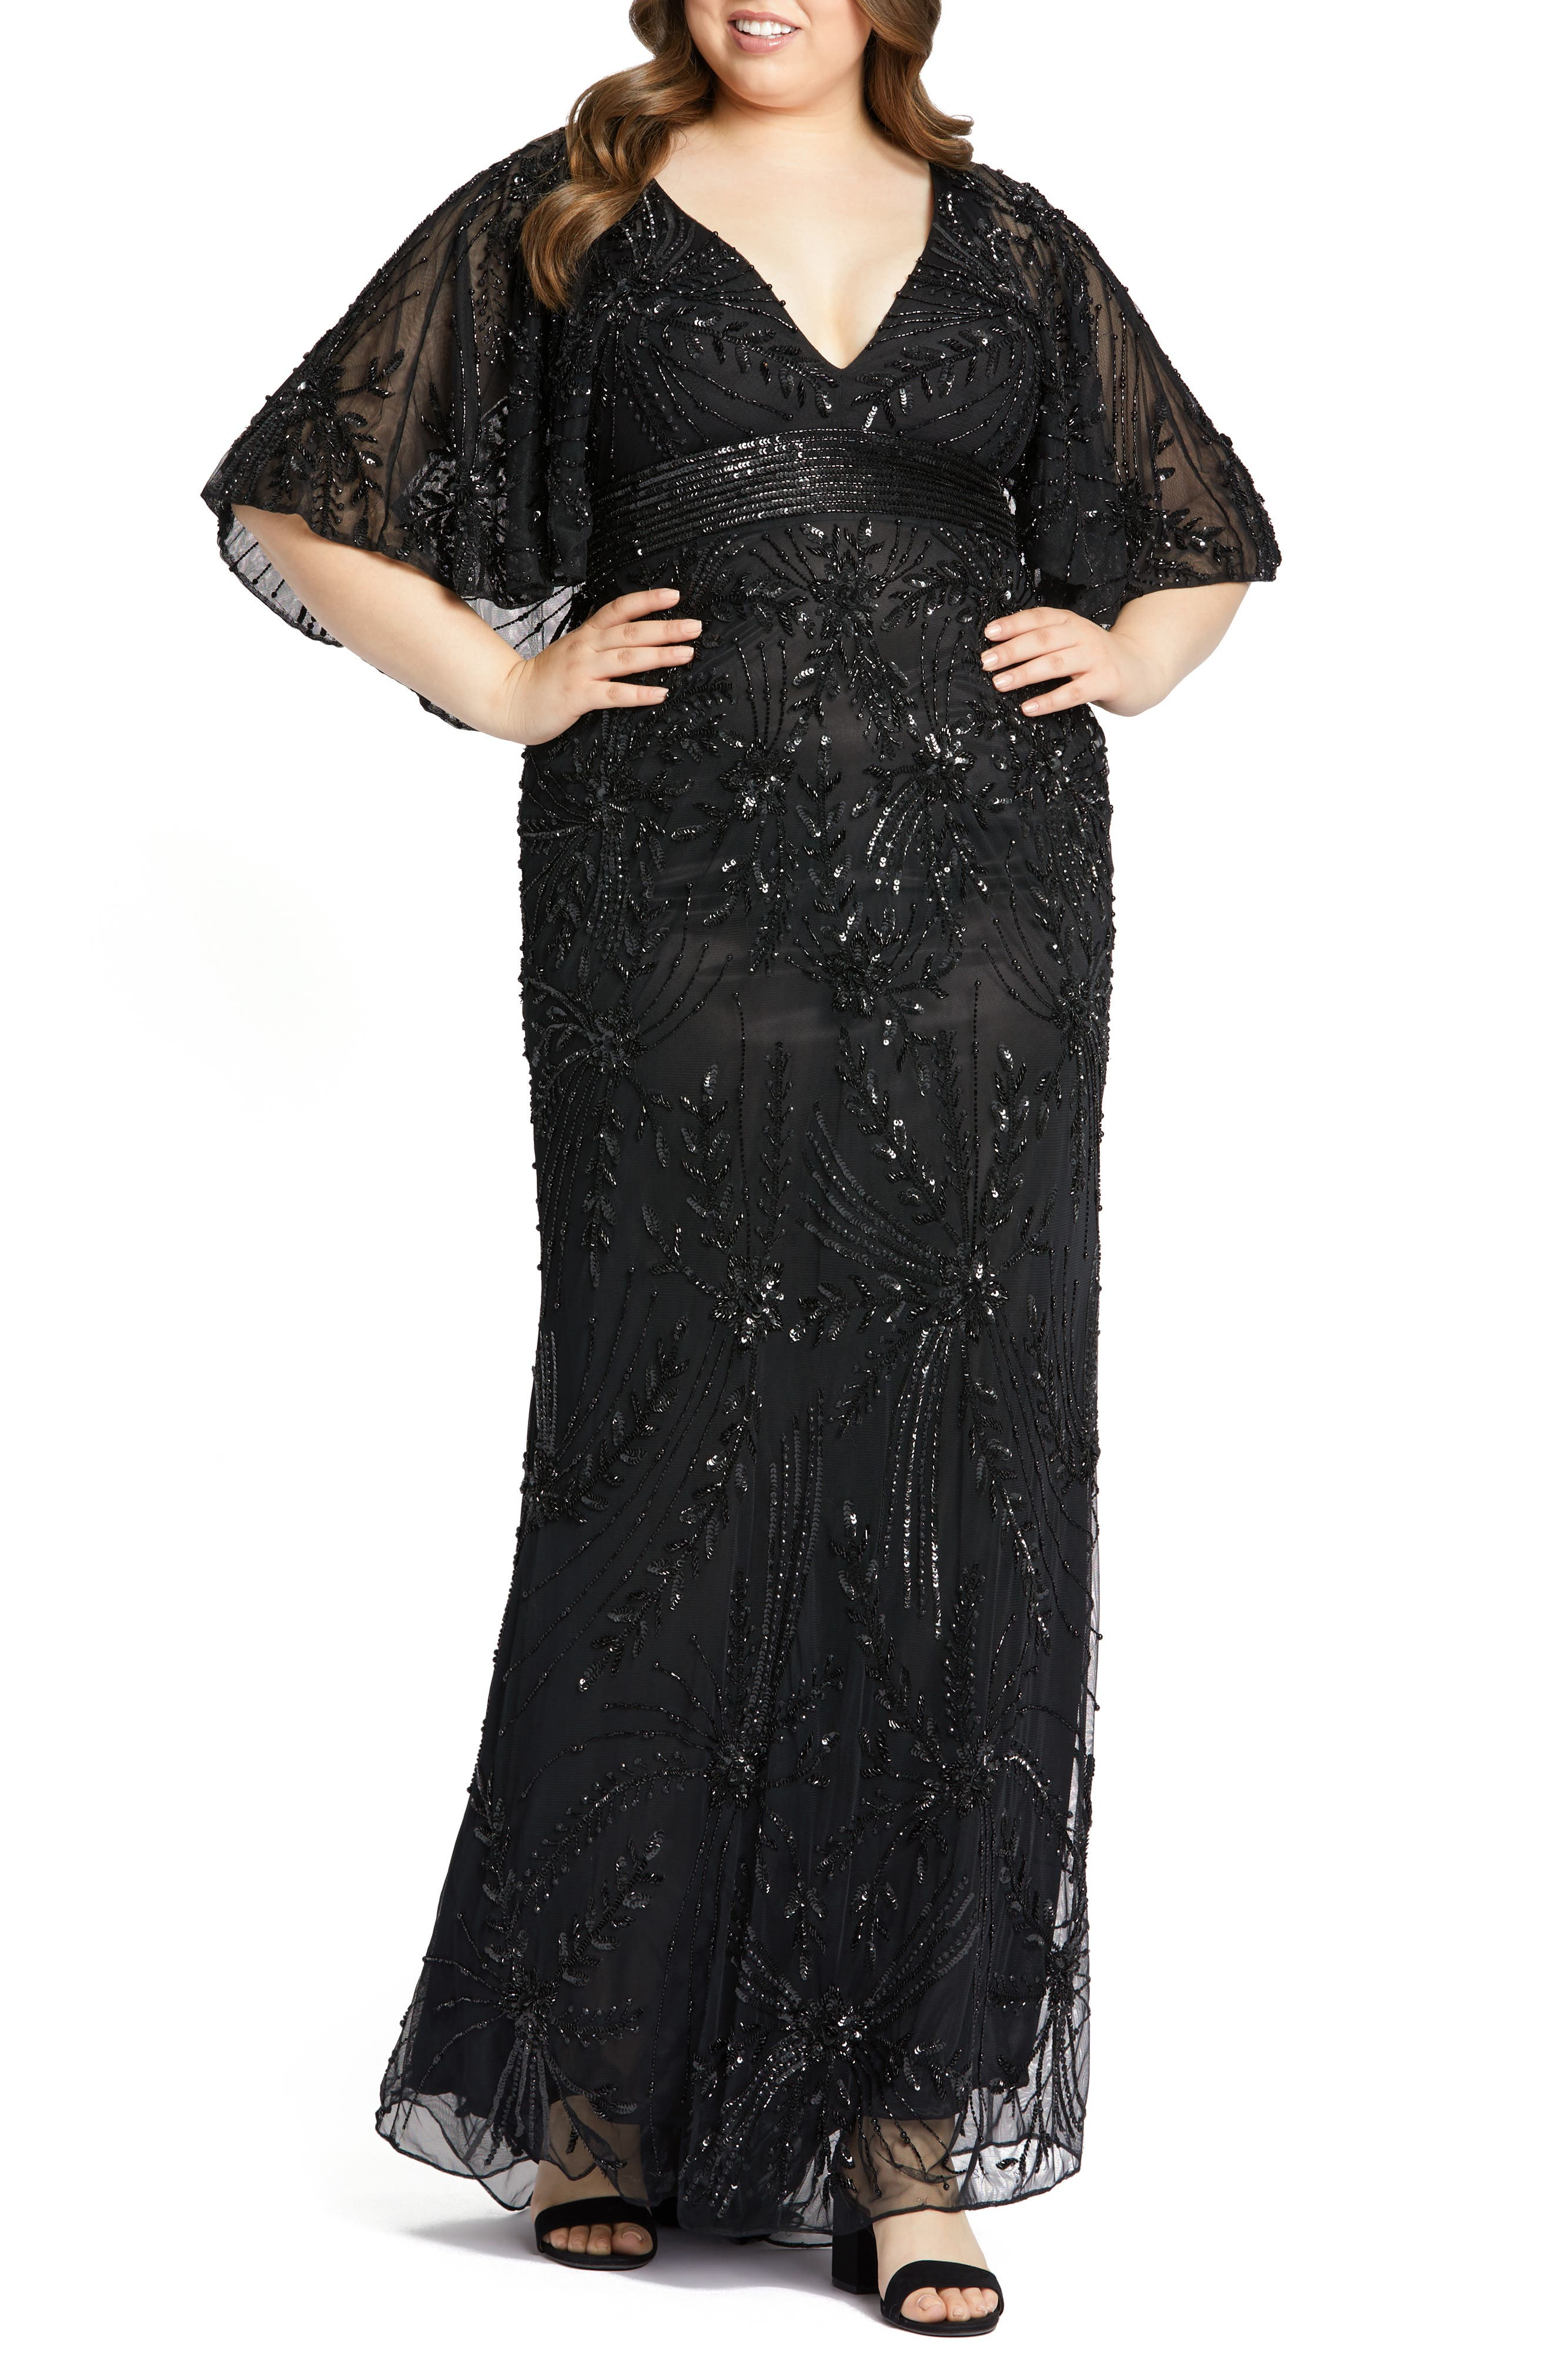 Vintage 1920s Dresses – Where to Buy Plus Size Womens MAC Duggal Beaded Cape Sleeve Column Gown Size 24W - Black $598.00 AT vintagedancer.com